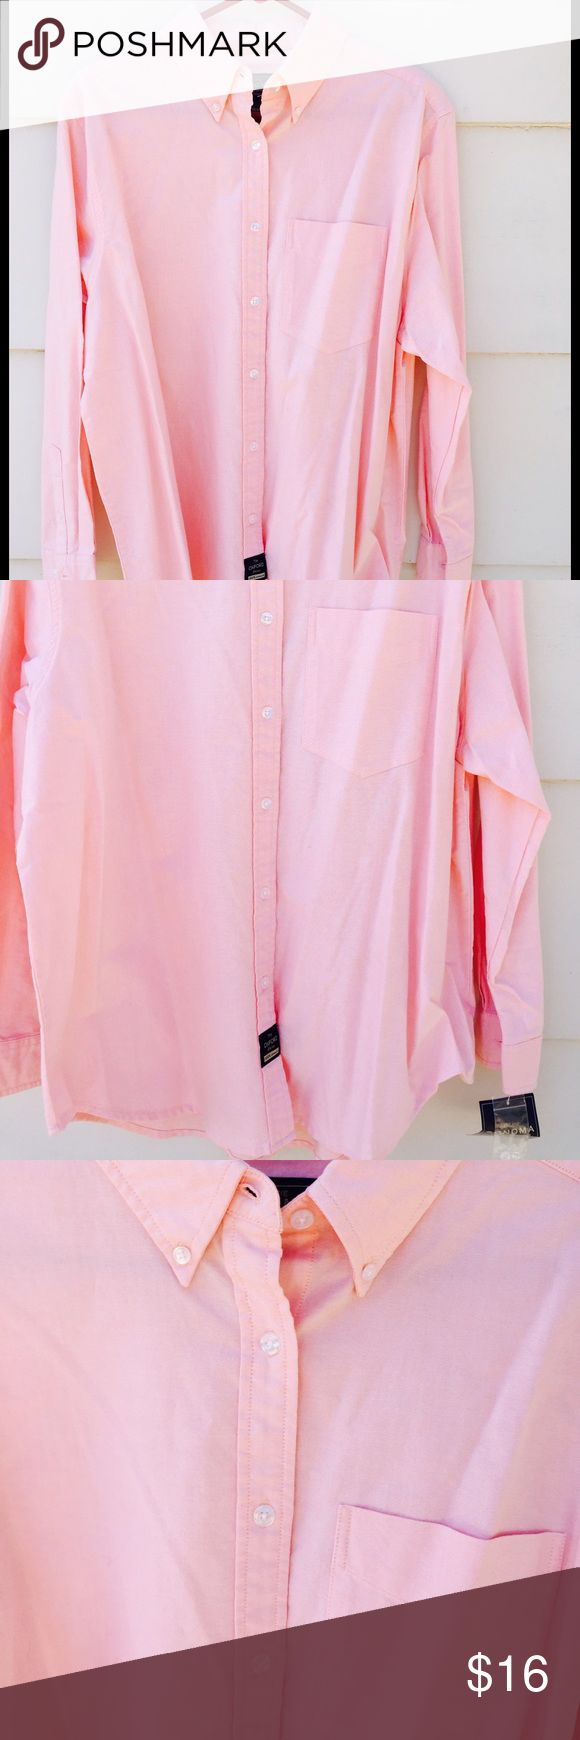 """Sonoma Jean Women's Sportswear Pink Shirt 16 W Lovely Sonoma Jean Women's Sportswear Long Sleeve Shirt Pink Strawberry Cream Size 16 W New with Tag. Measurements: Sleeves 22"""" Shoulder 9"""" Armpit 48"""" a Overall Length 38"""" Condition: New with Tag. It does have a very light not noticeable stain on the fron right portion of the shirt close to the bottom. Sonoma Jean Tops Button Down Shirts"""